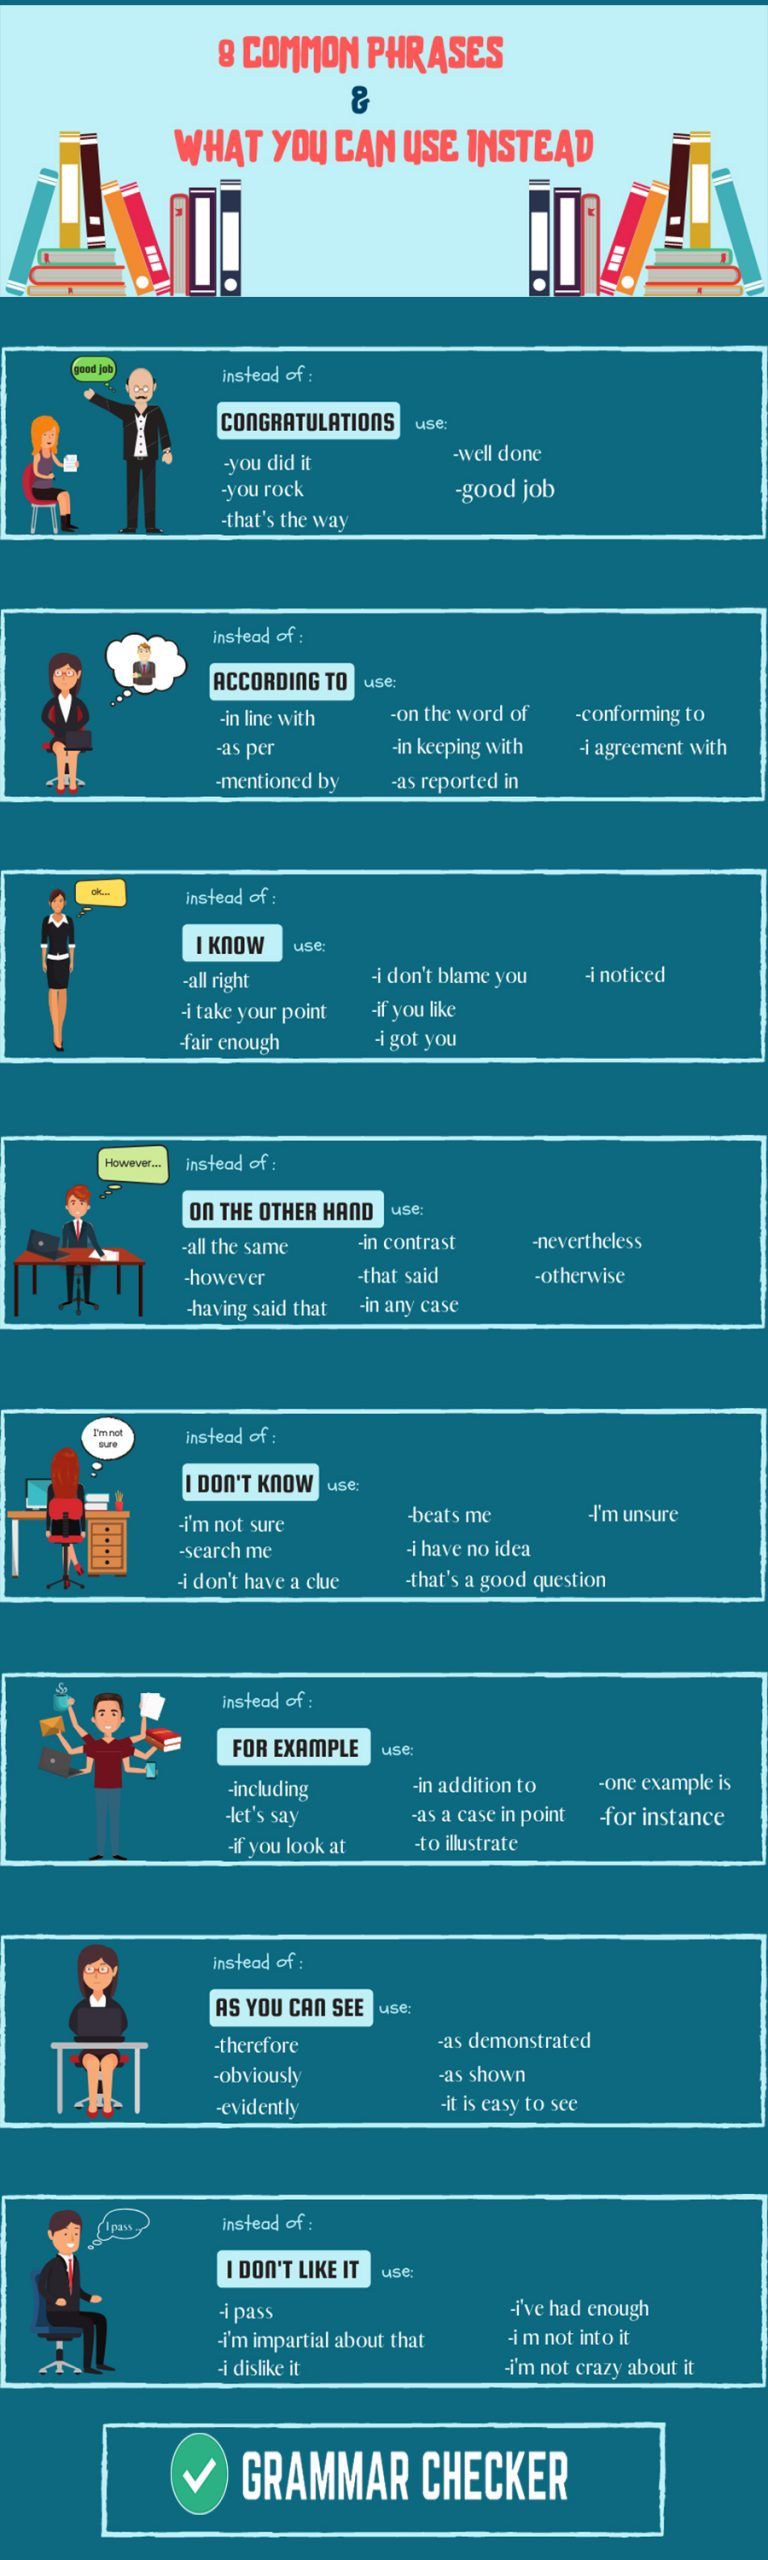 8 Common phrases and what you can use instead (Infographic)